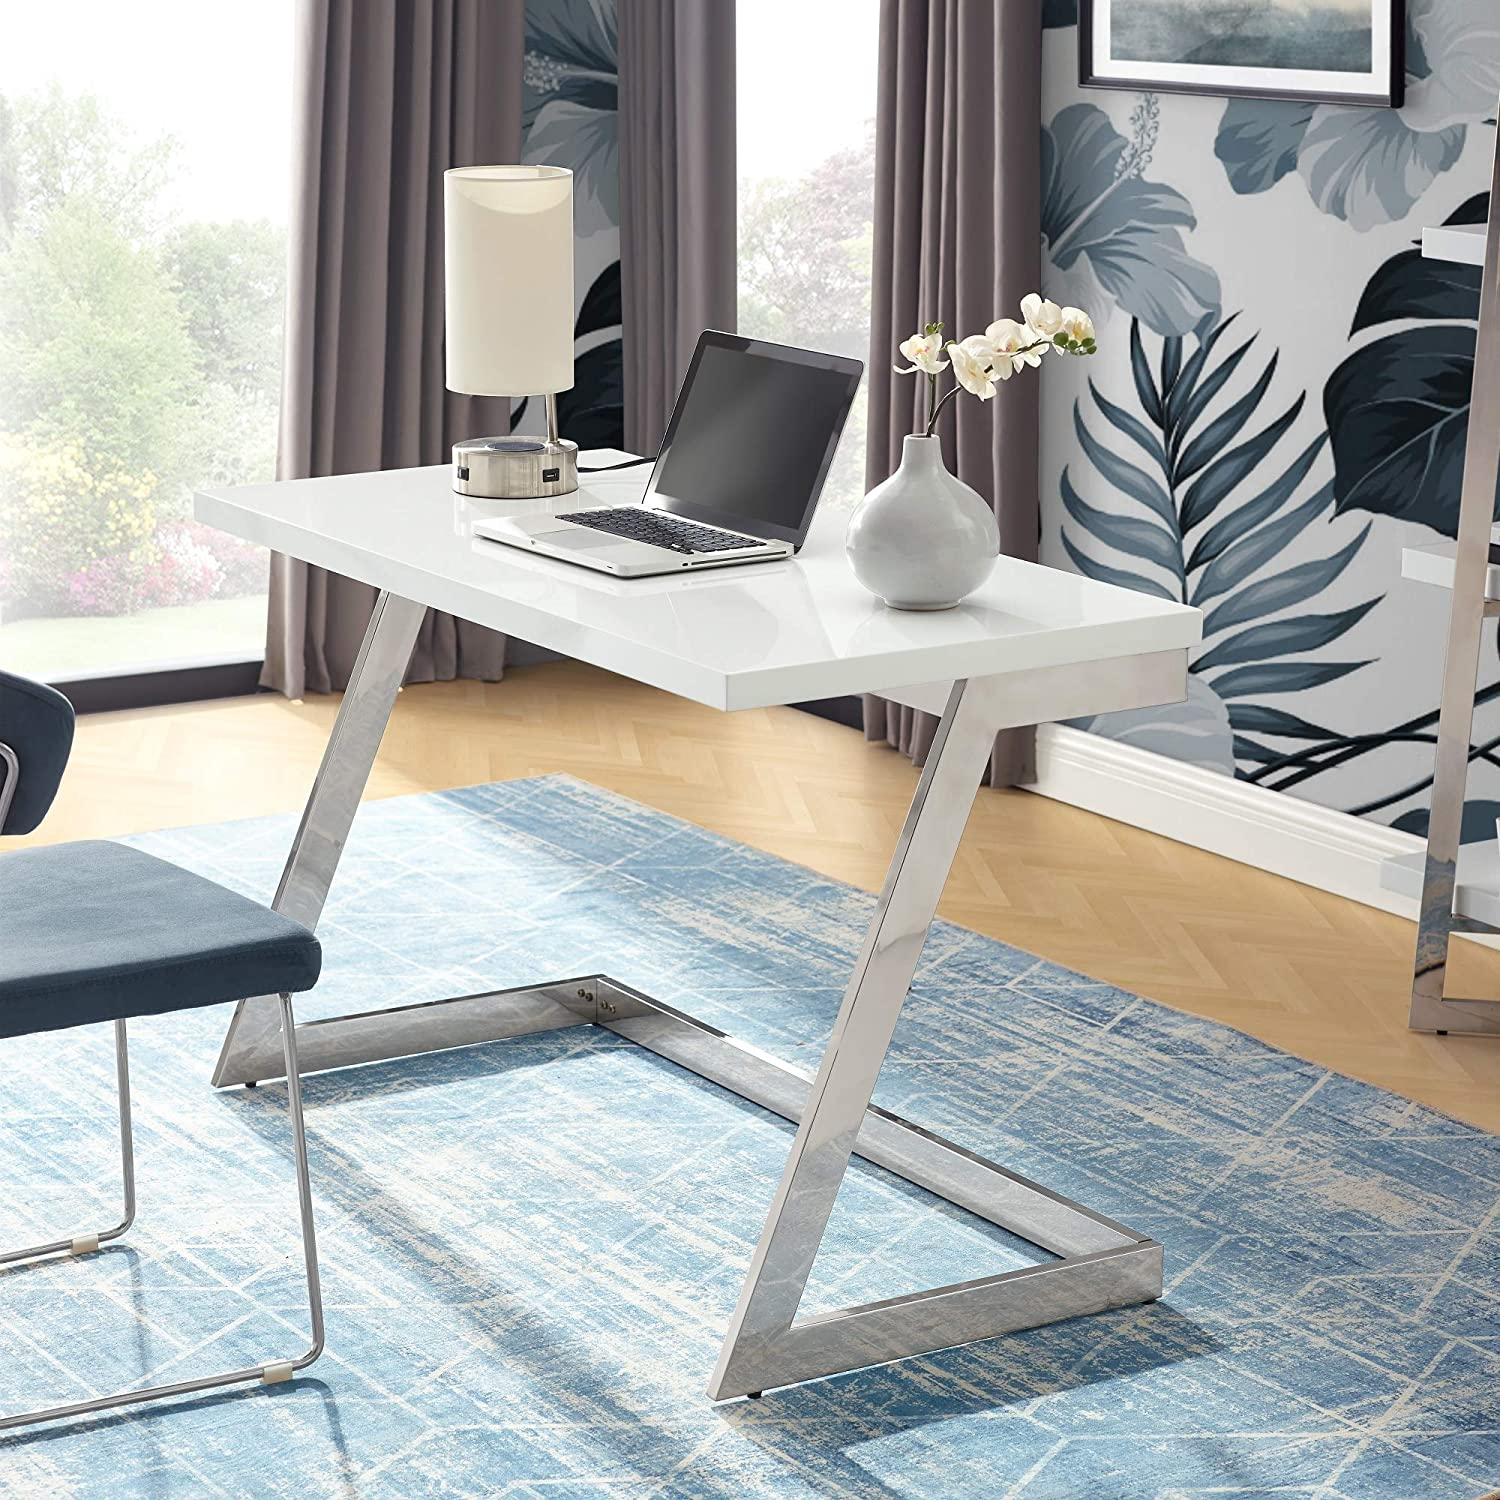 Kali White/Chrome Writing Desk - High Gloss Lacquer Finish Top   Polished Stainless Steel Base   Geometric Legs